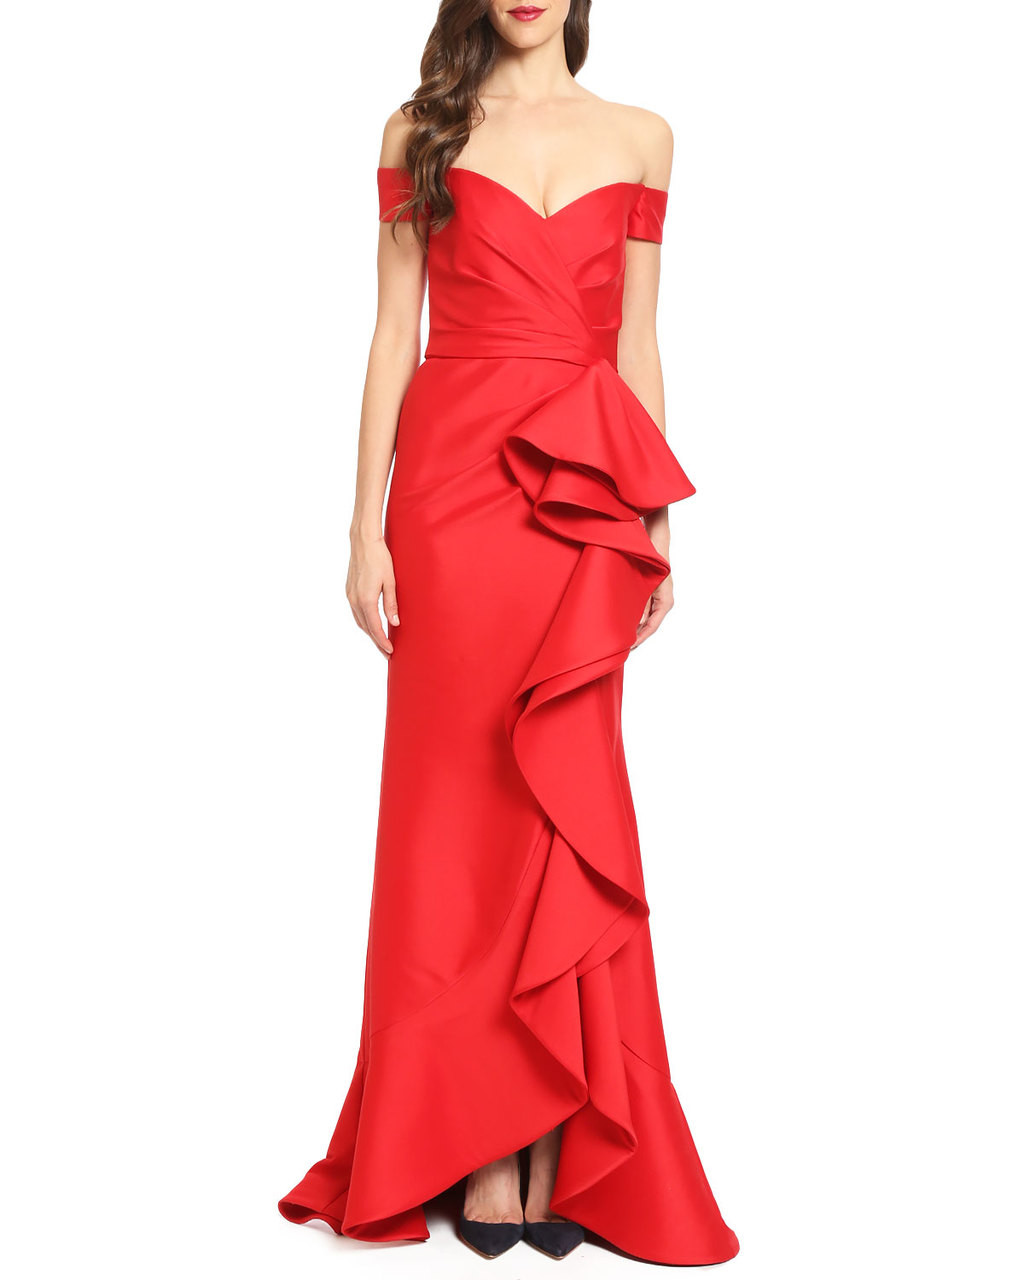 c3d41f94227a6 Off-the-Shoulder Ruffle Evening Gown by Badgley Mischka